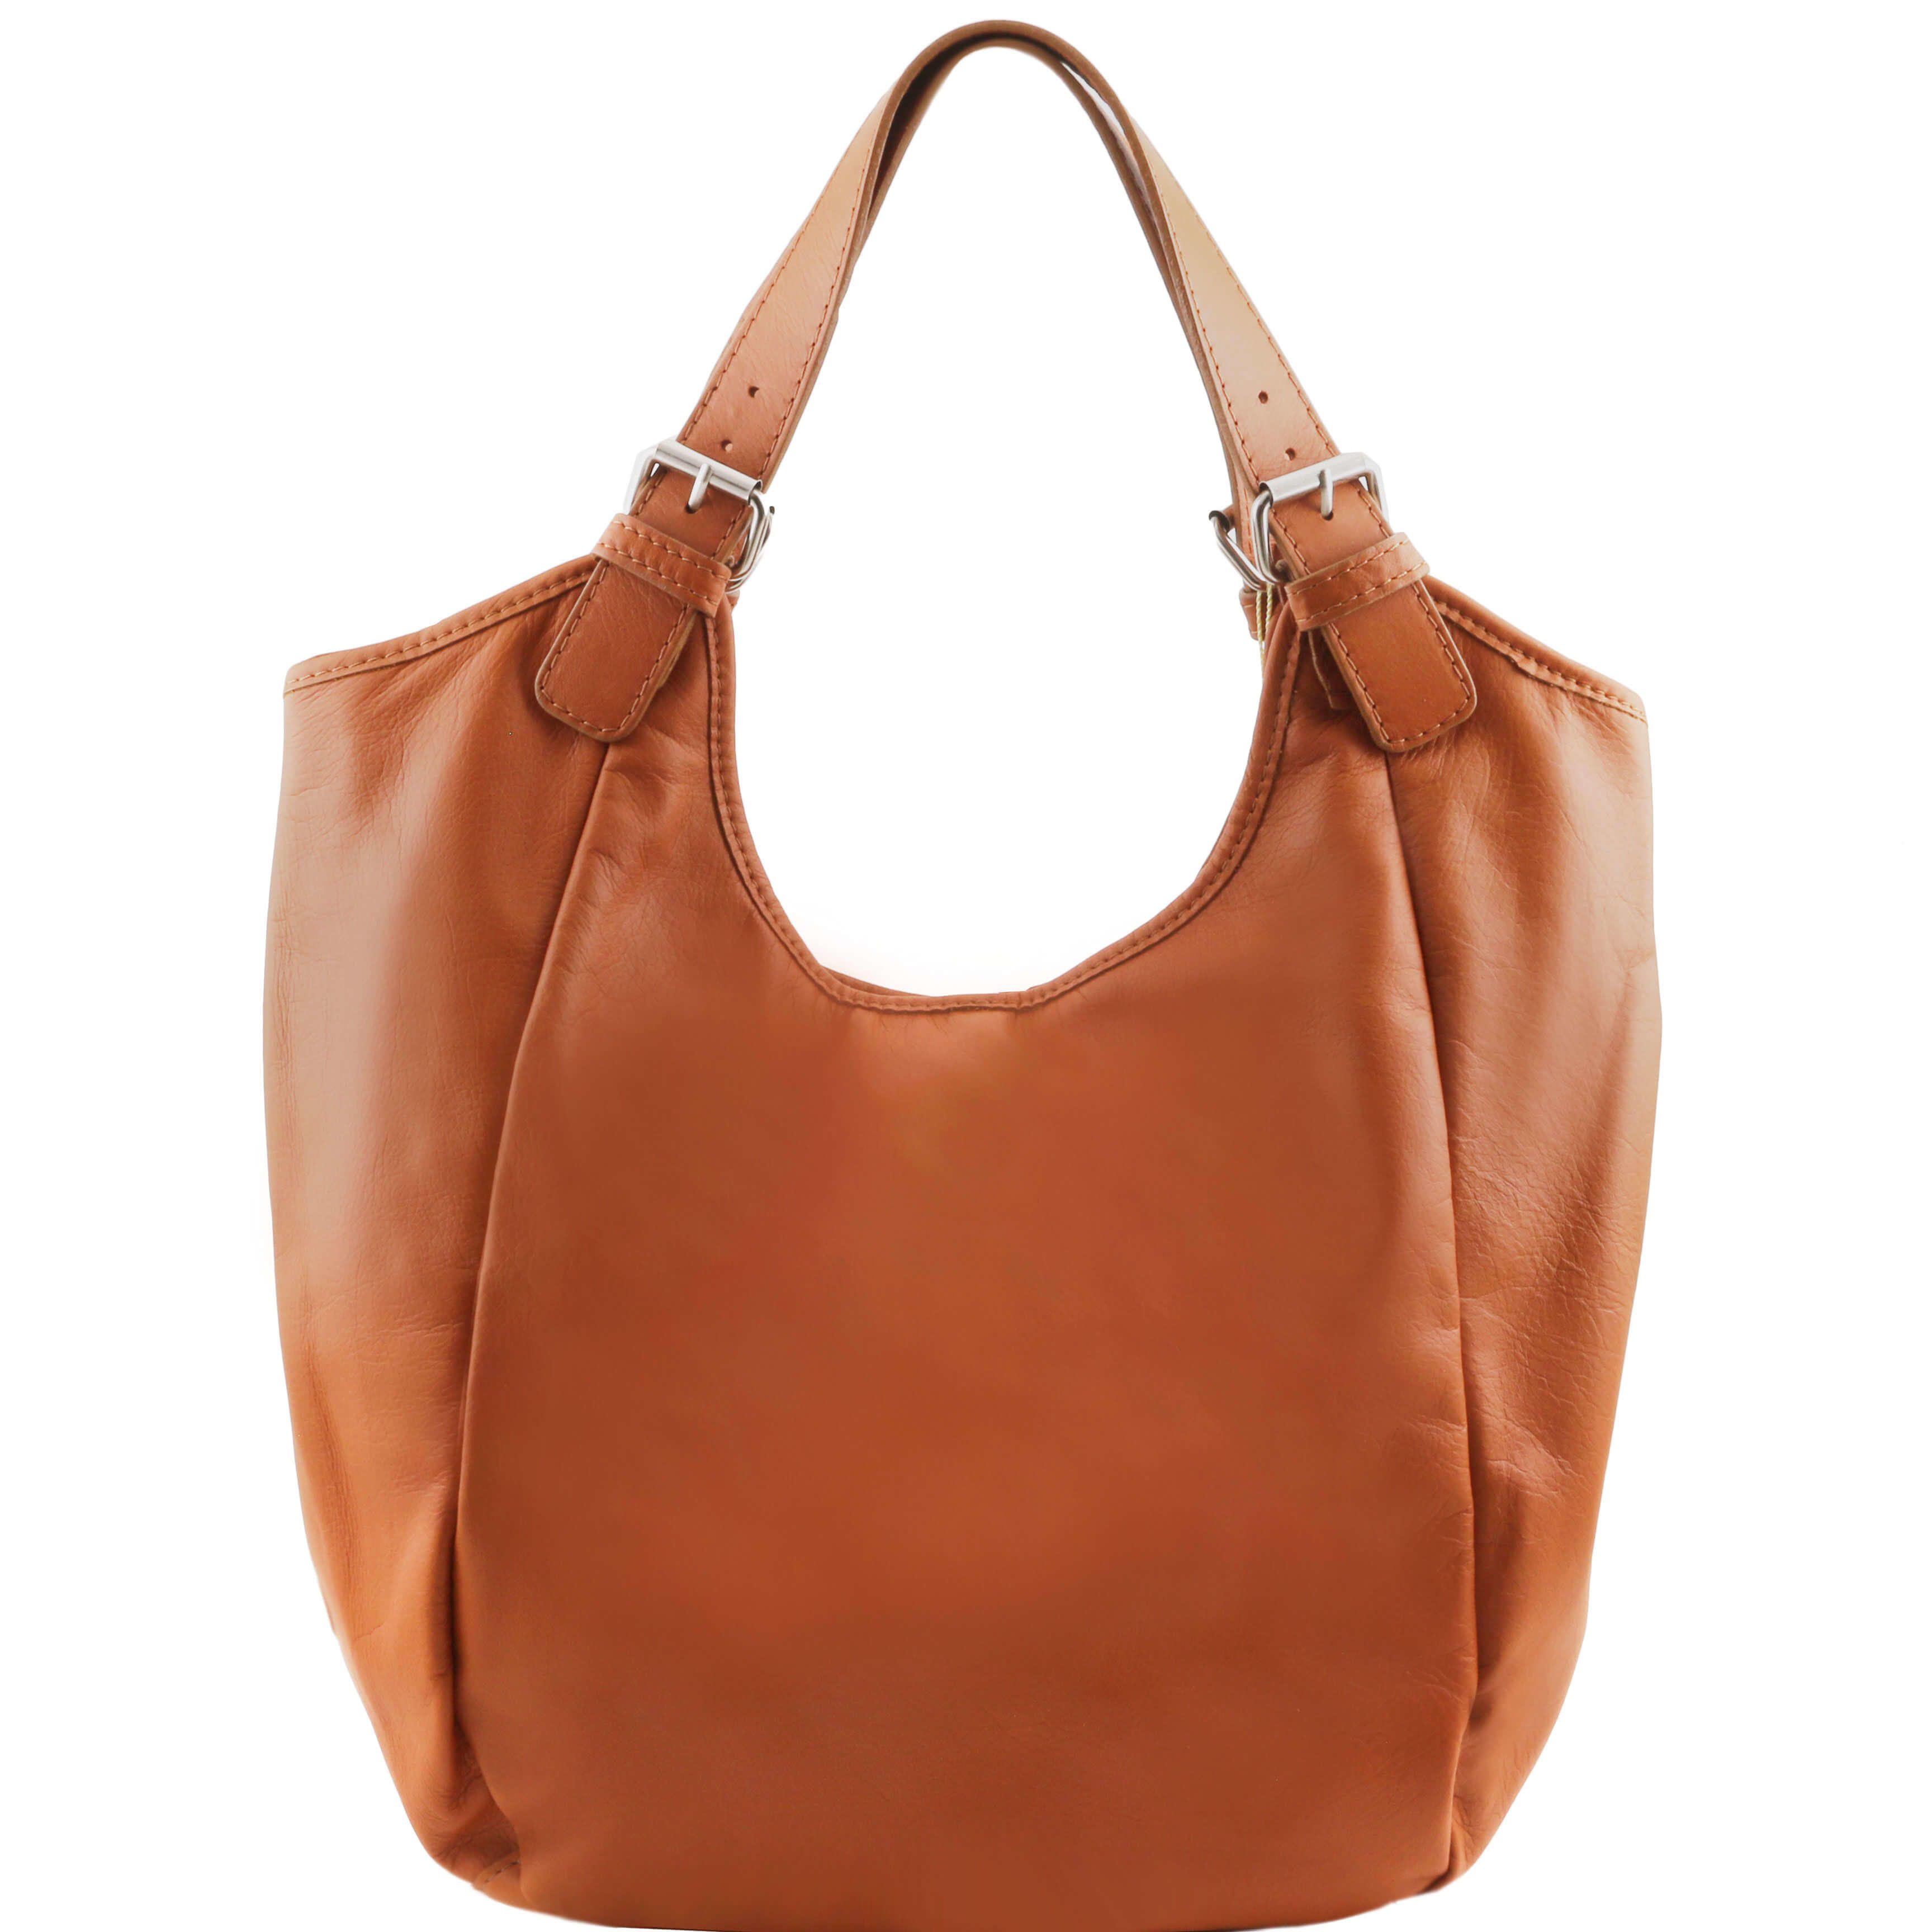 TL141357 Gina Classic Leather-Hand-Shoulder-Tote-Hobo-Bag Cognac